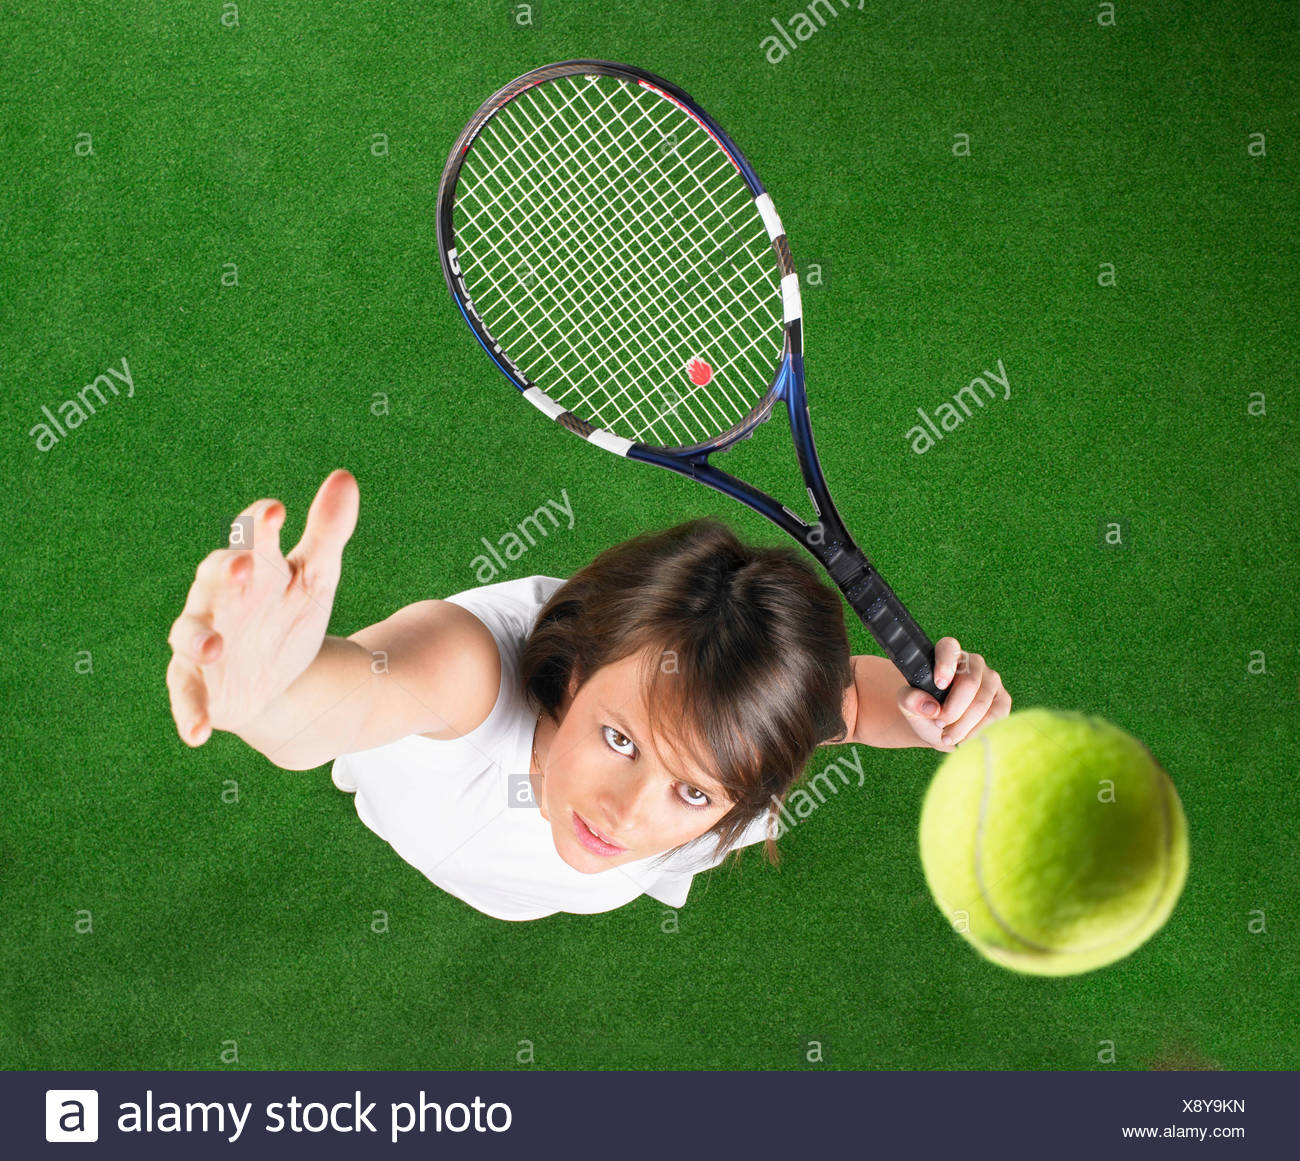 tennis serve shot from above - Stock Image